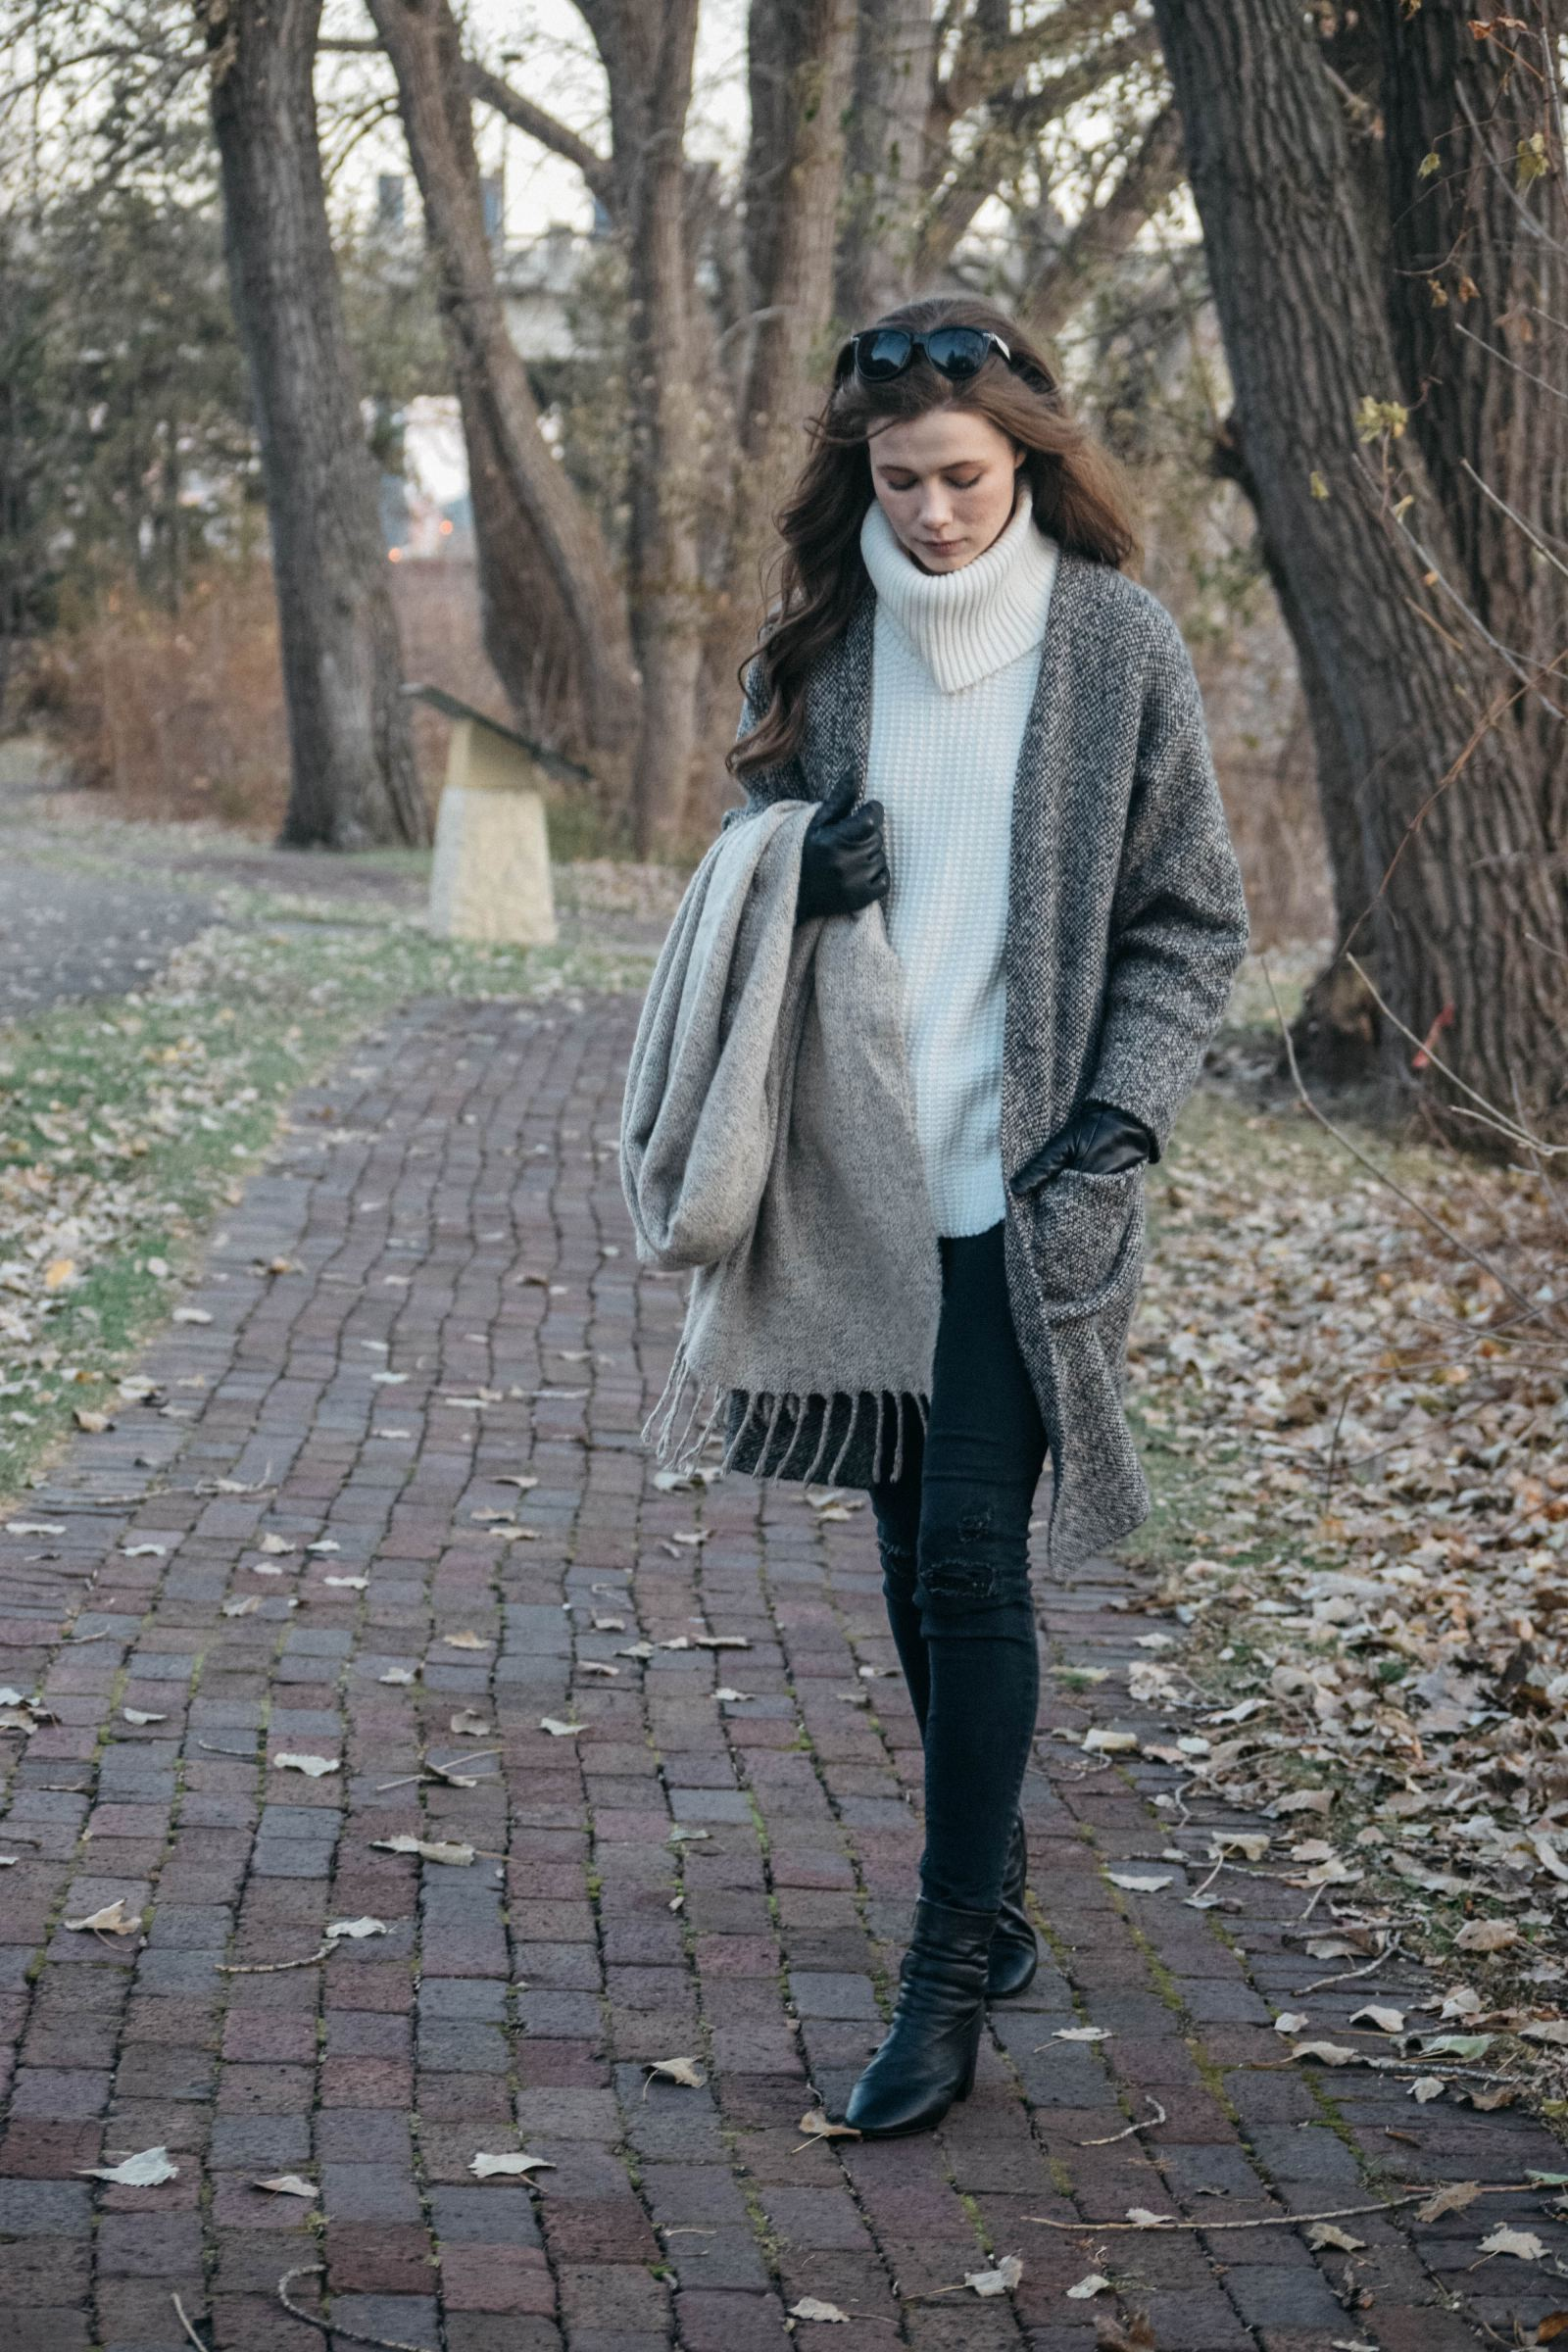 UNIQLO, sweater coat, how to style, winter fashion, topshop, topshop boots, white house black market, whbm, whbm denim, neutrals, winter fashion 2017, monochrome minimalist, minimalist fashion, winter trends, layering, target style, turtleneck knits